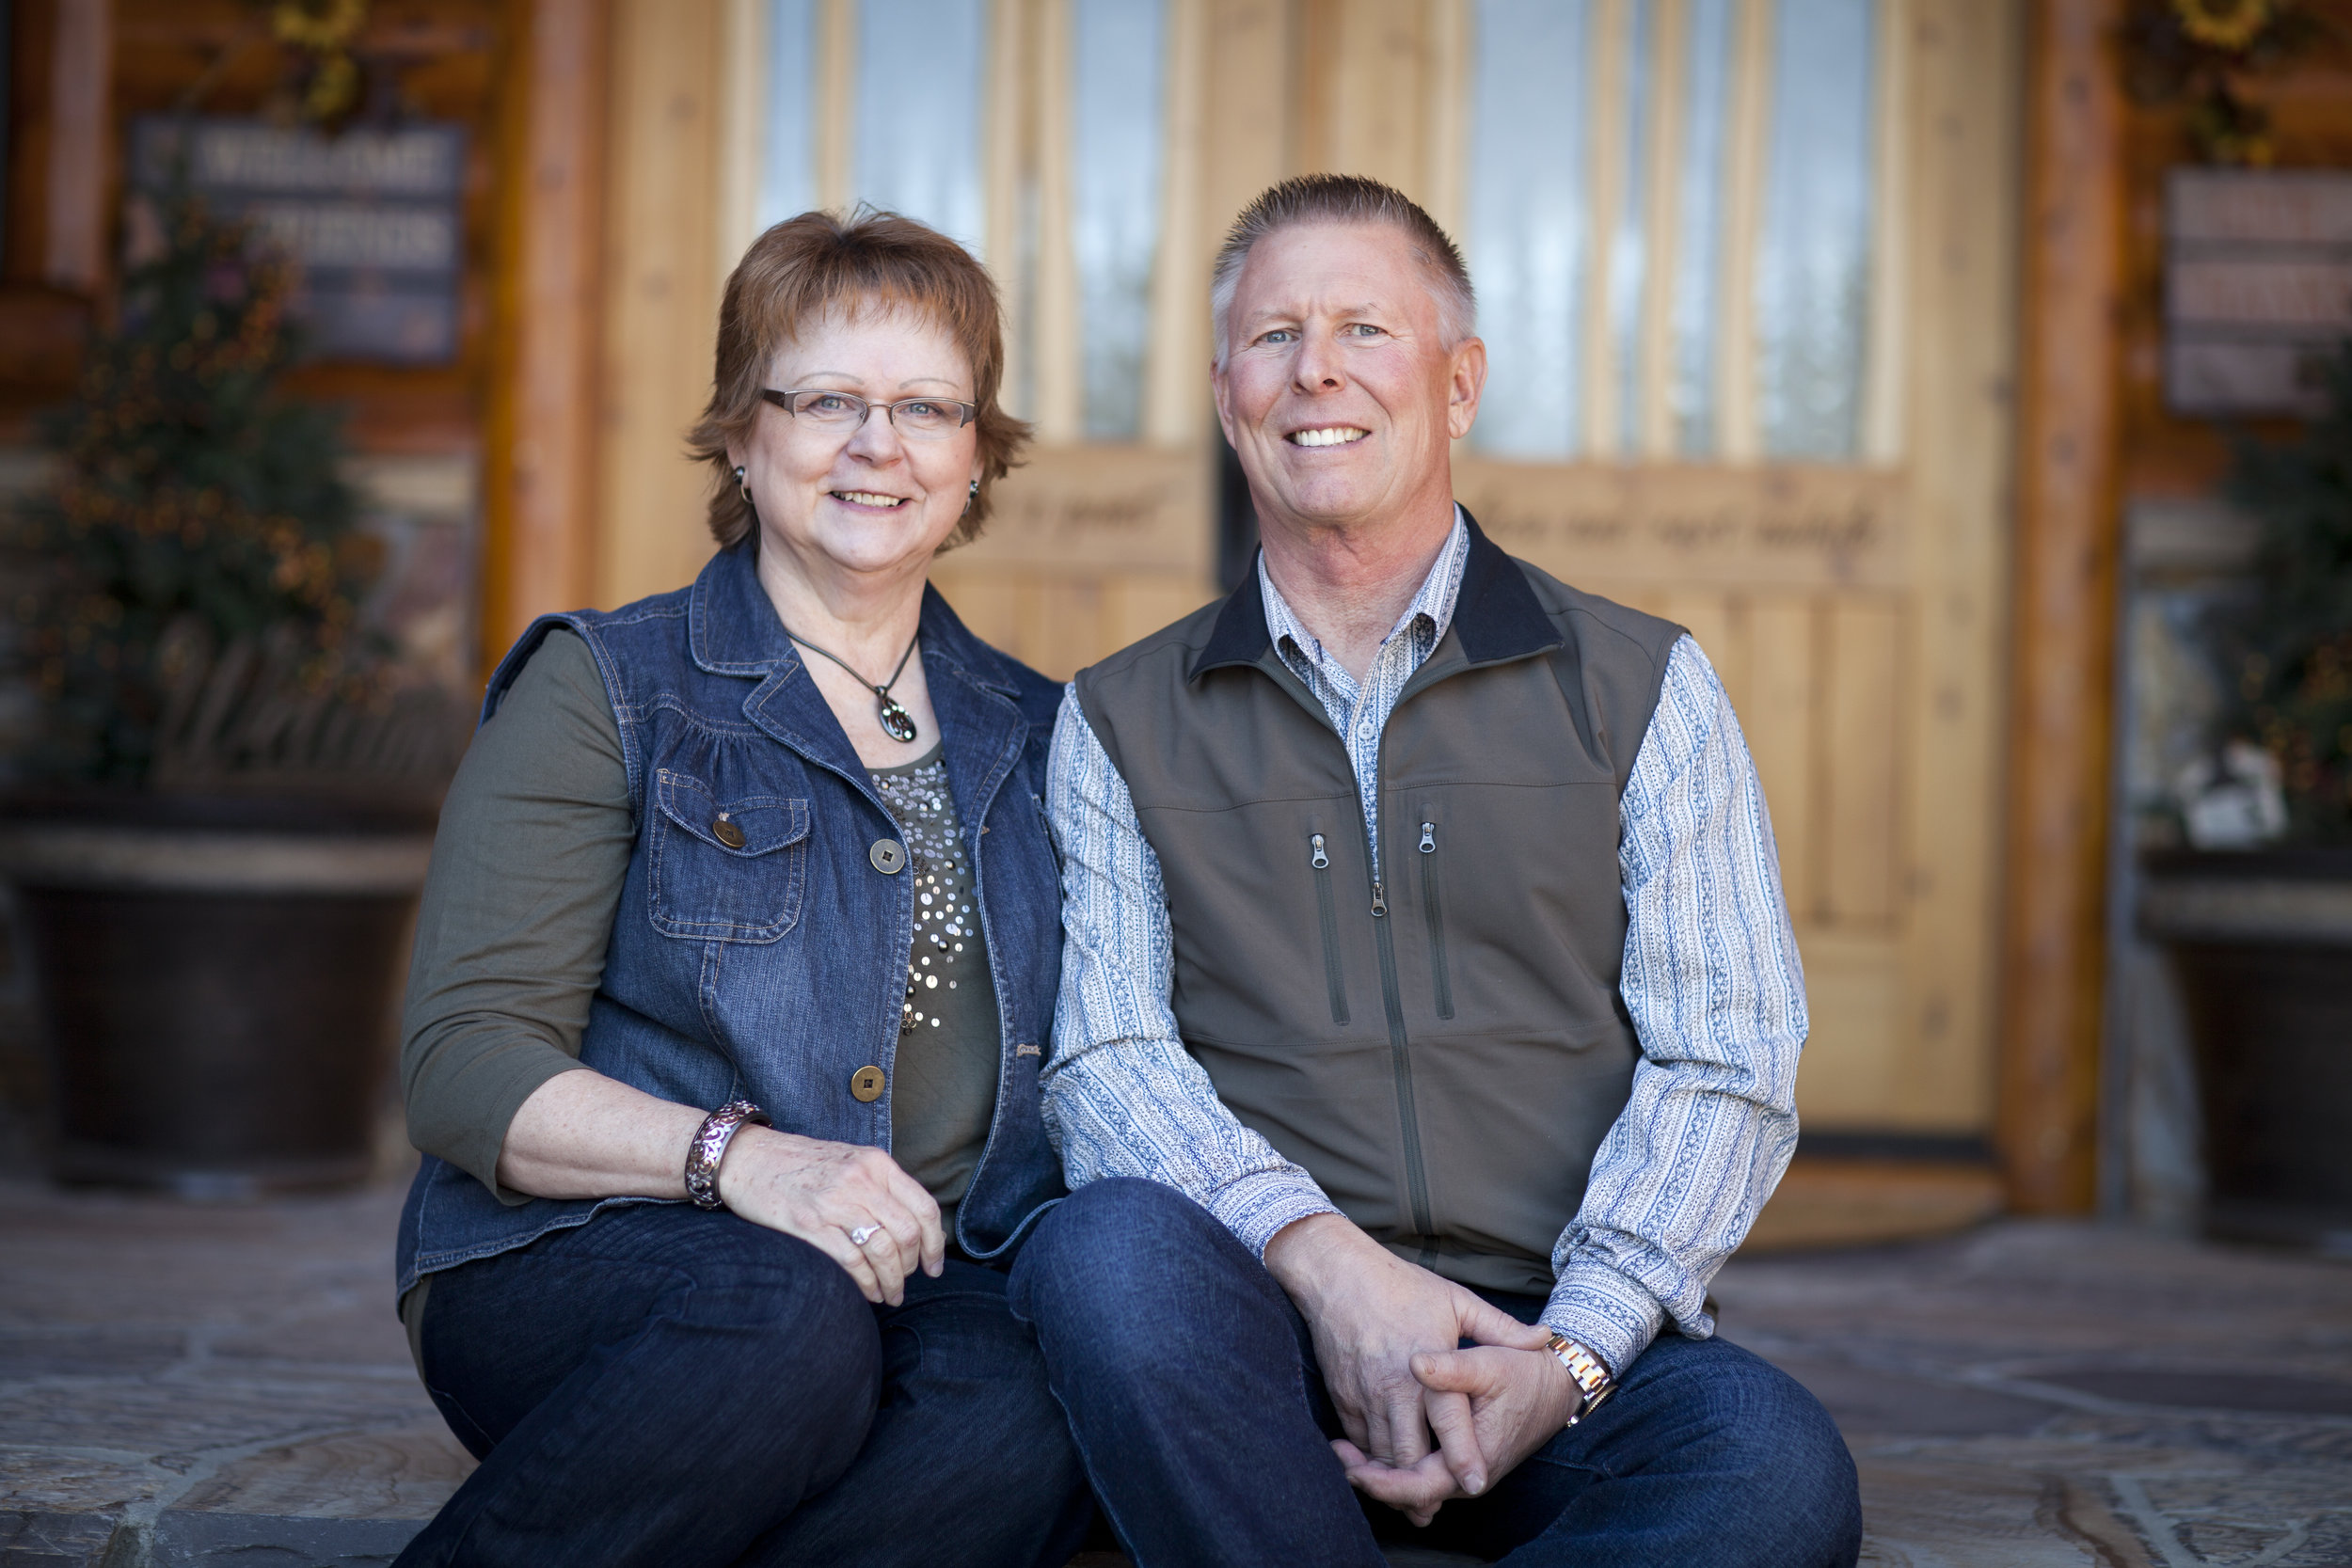 Kevin & Julie - Kevin and Julie are builders and farmers for the future. The late 70's brought many challenges to local farmers including Kevin and Julie. This challenge caused them think outside of the box towards a new concept of organic farming. In 1983 they restructured their farming operation and began growing organic crops and seeds. Their grains were shipped all over the United States and the world from Europe to Japan. Growing things to fill needs is Kevin and Julie's niche. They were growing organic before organic was a household term. In 2016 Kevin and Julie began another phase of building for the future in the form of aeroponic technology.